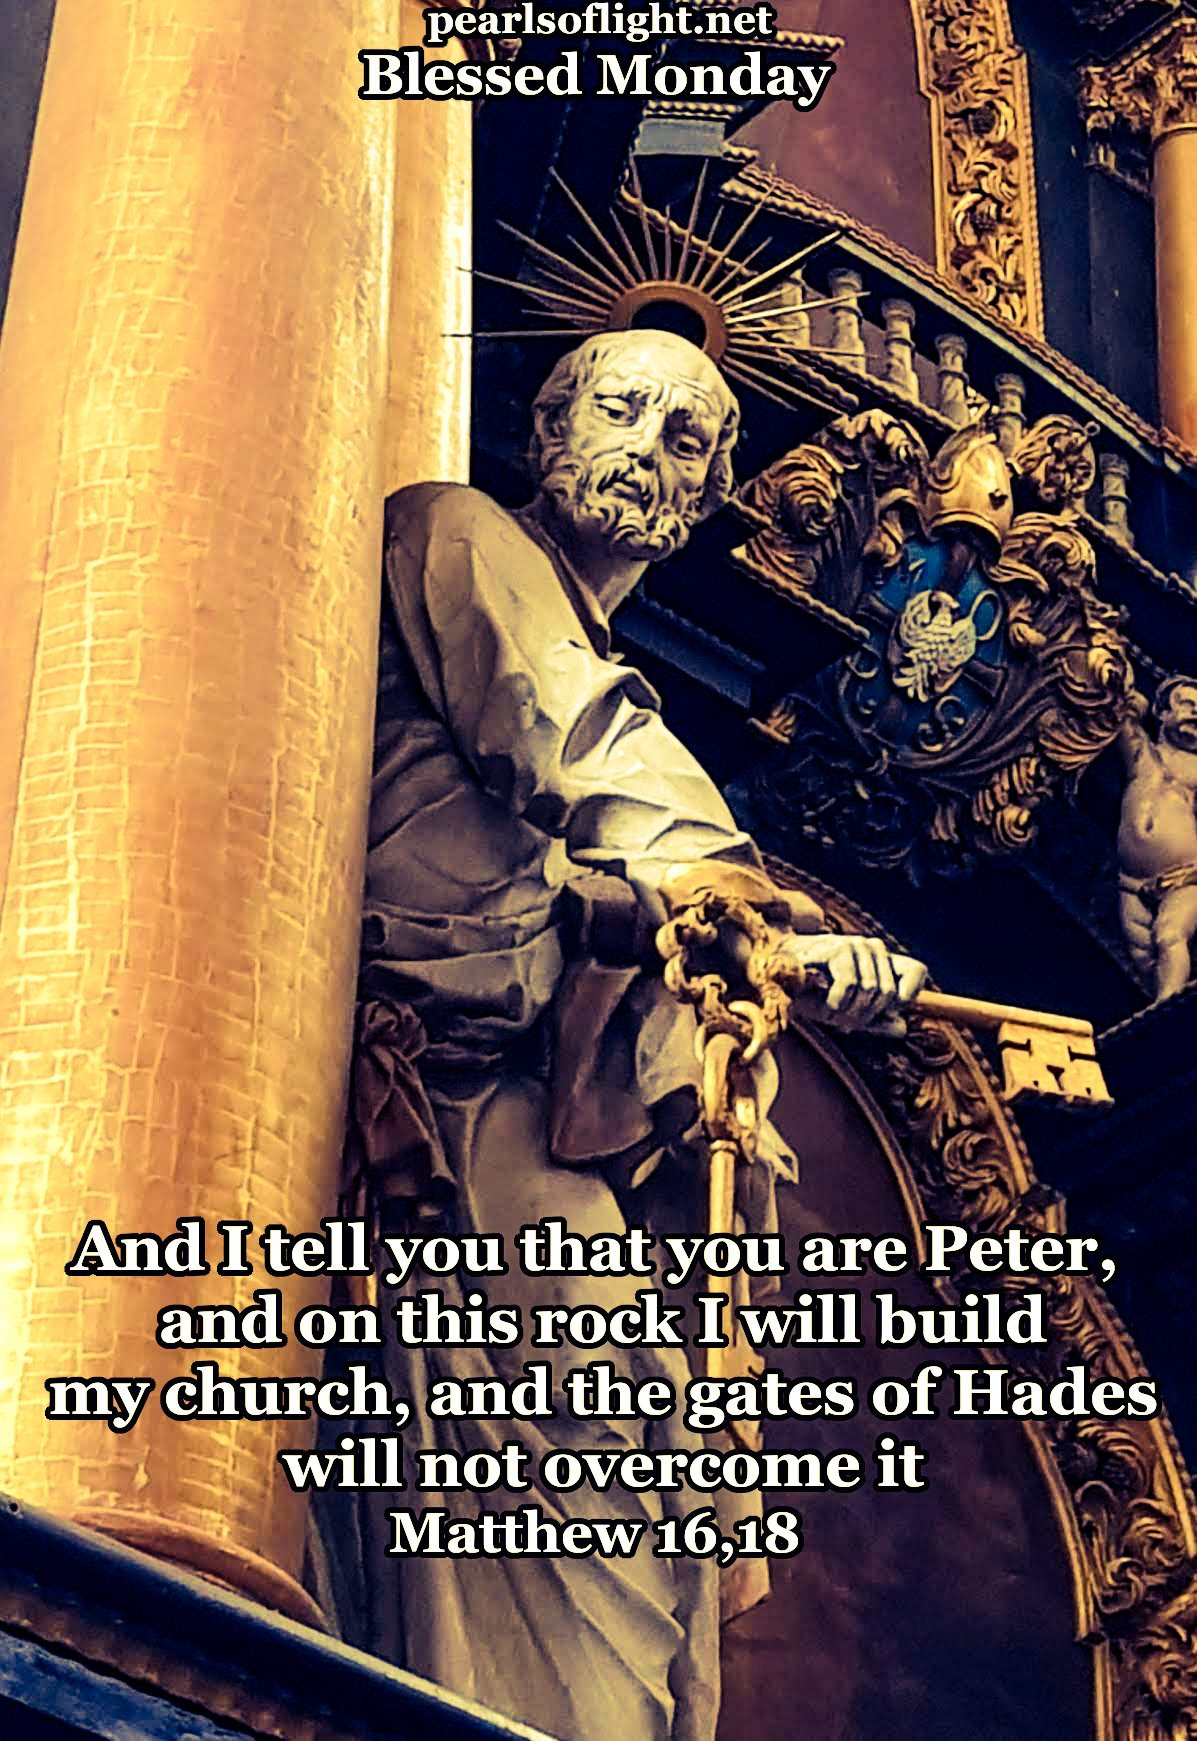 And I also say to you that you are Peter, and on this rock I will build my church…